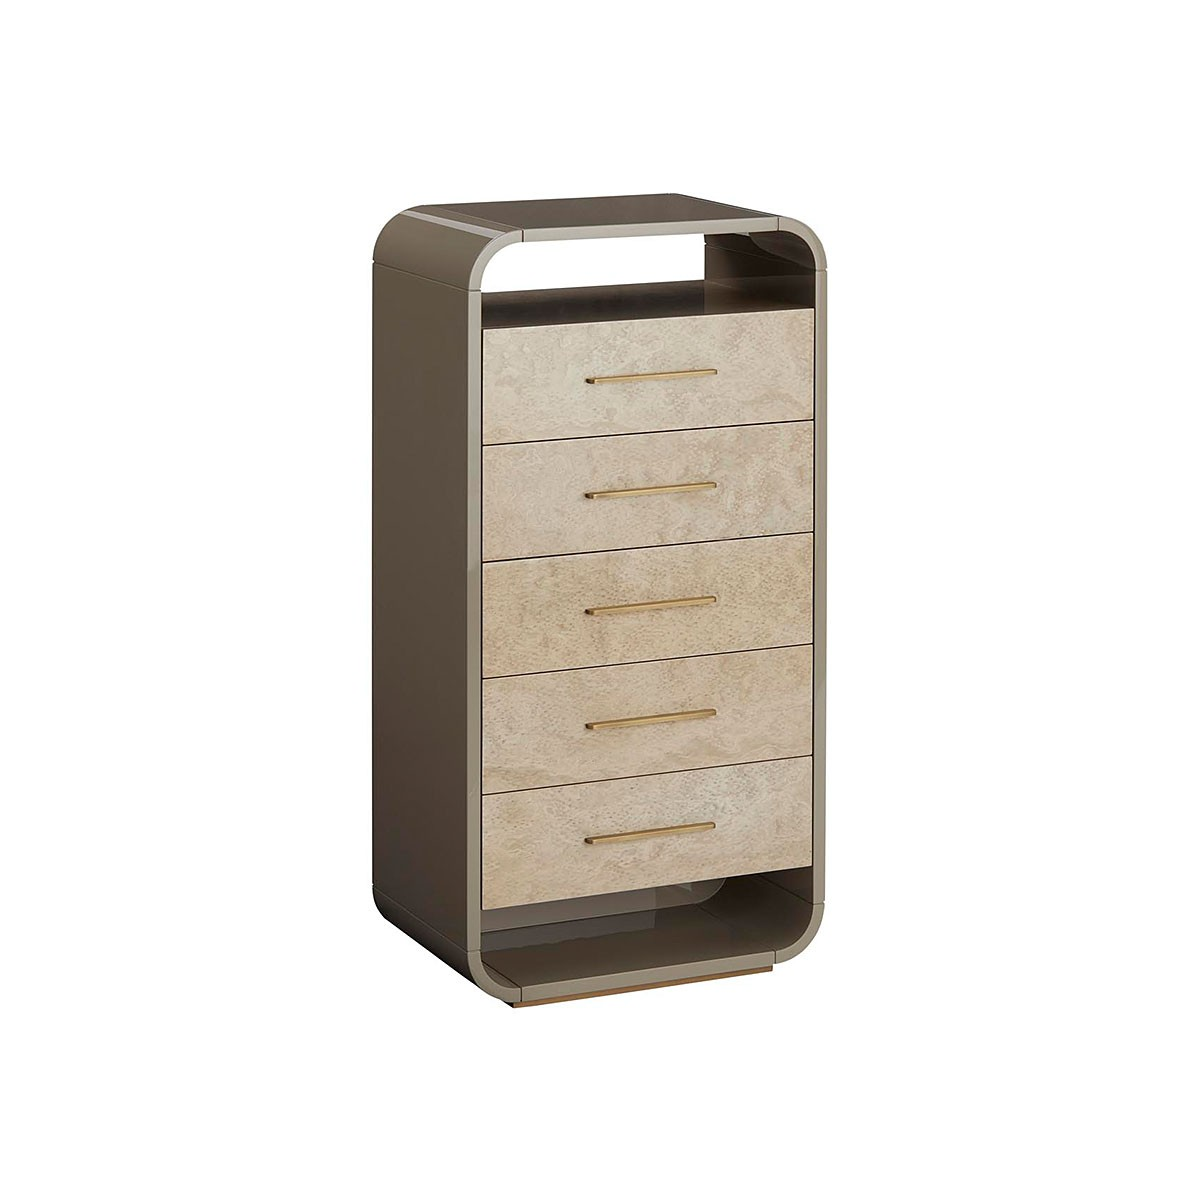 The Simone Chest of Drawers